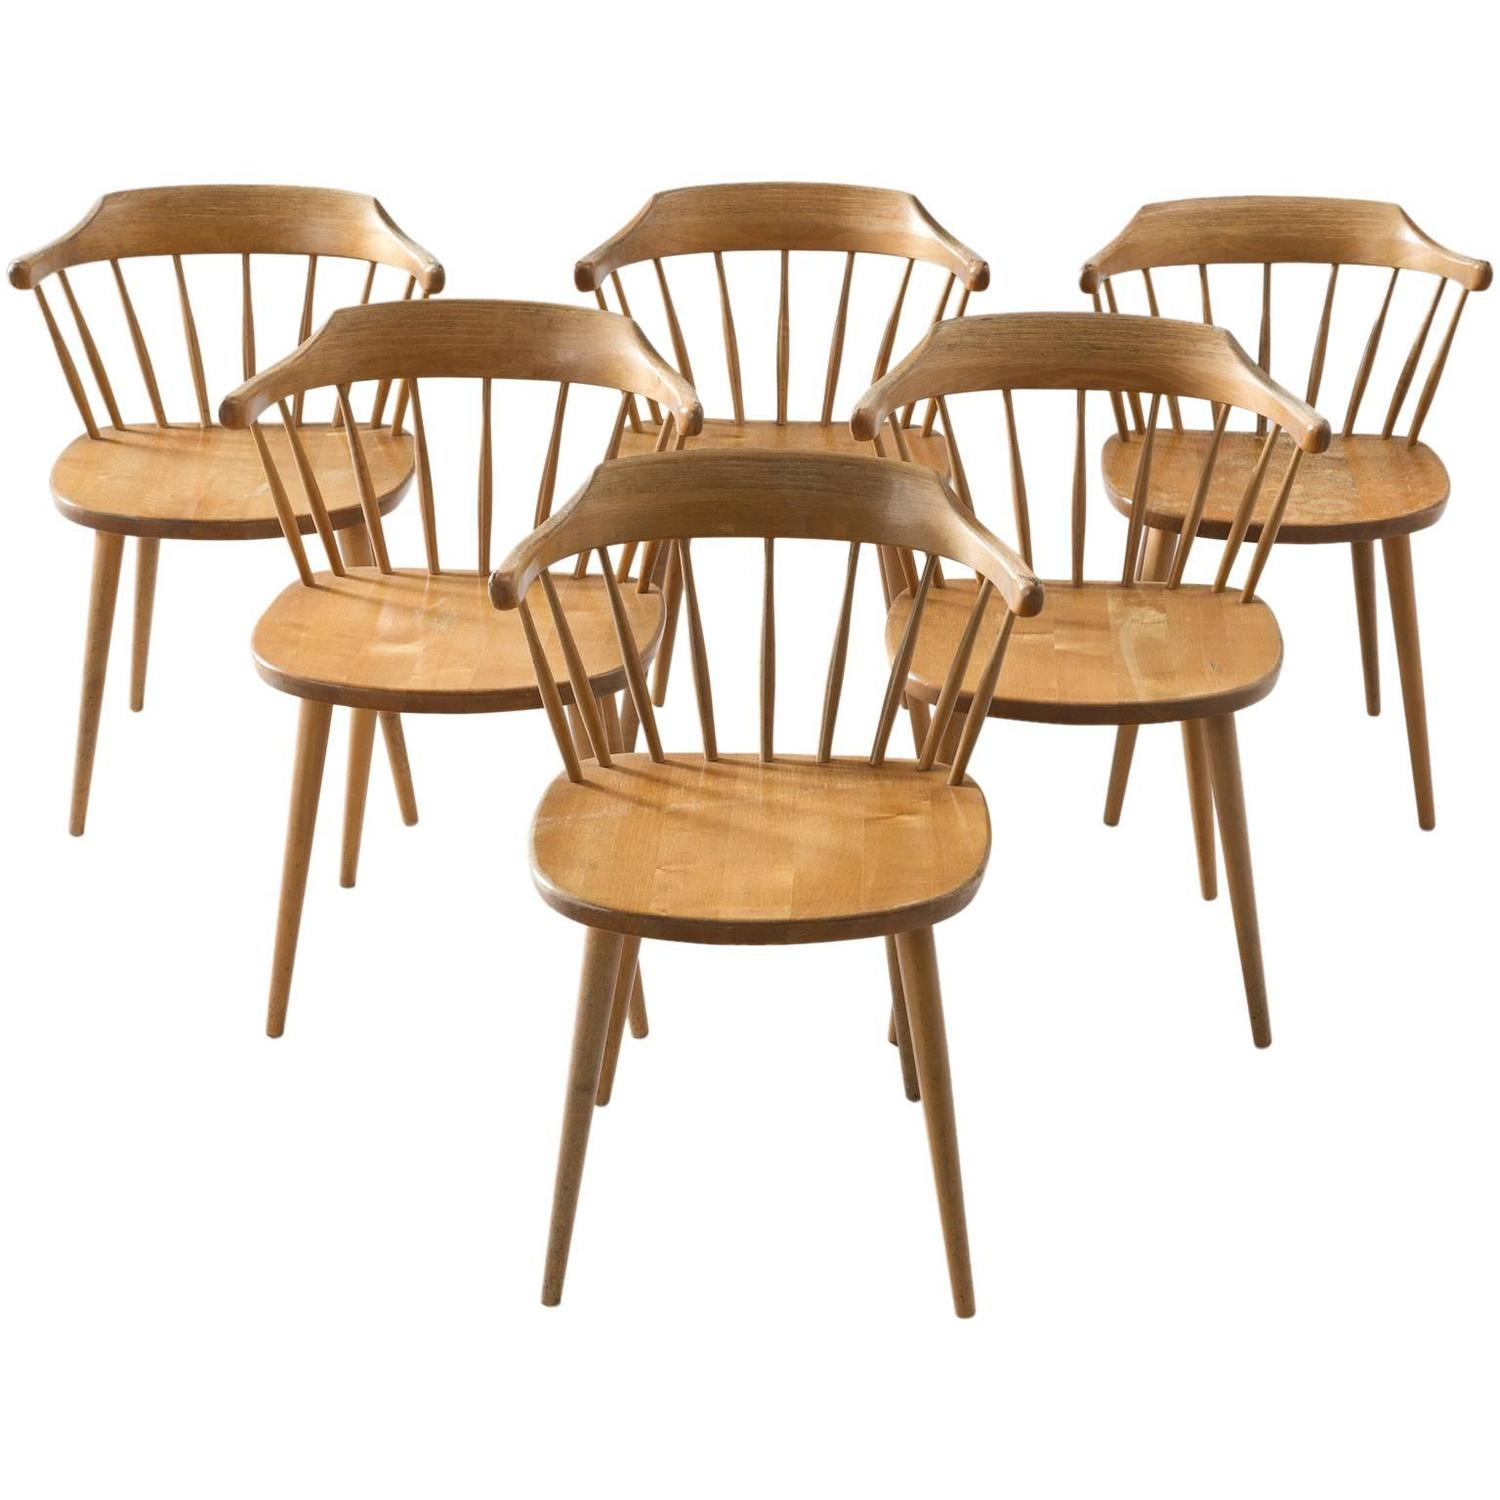 birch dining chairs yngve ekstr 246 m set of six sm 229 land dining chairs in birch 1660